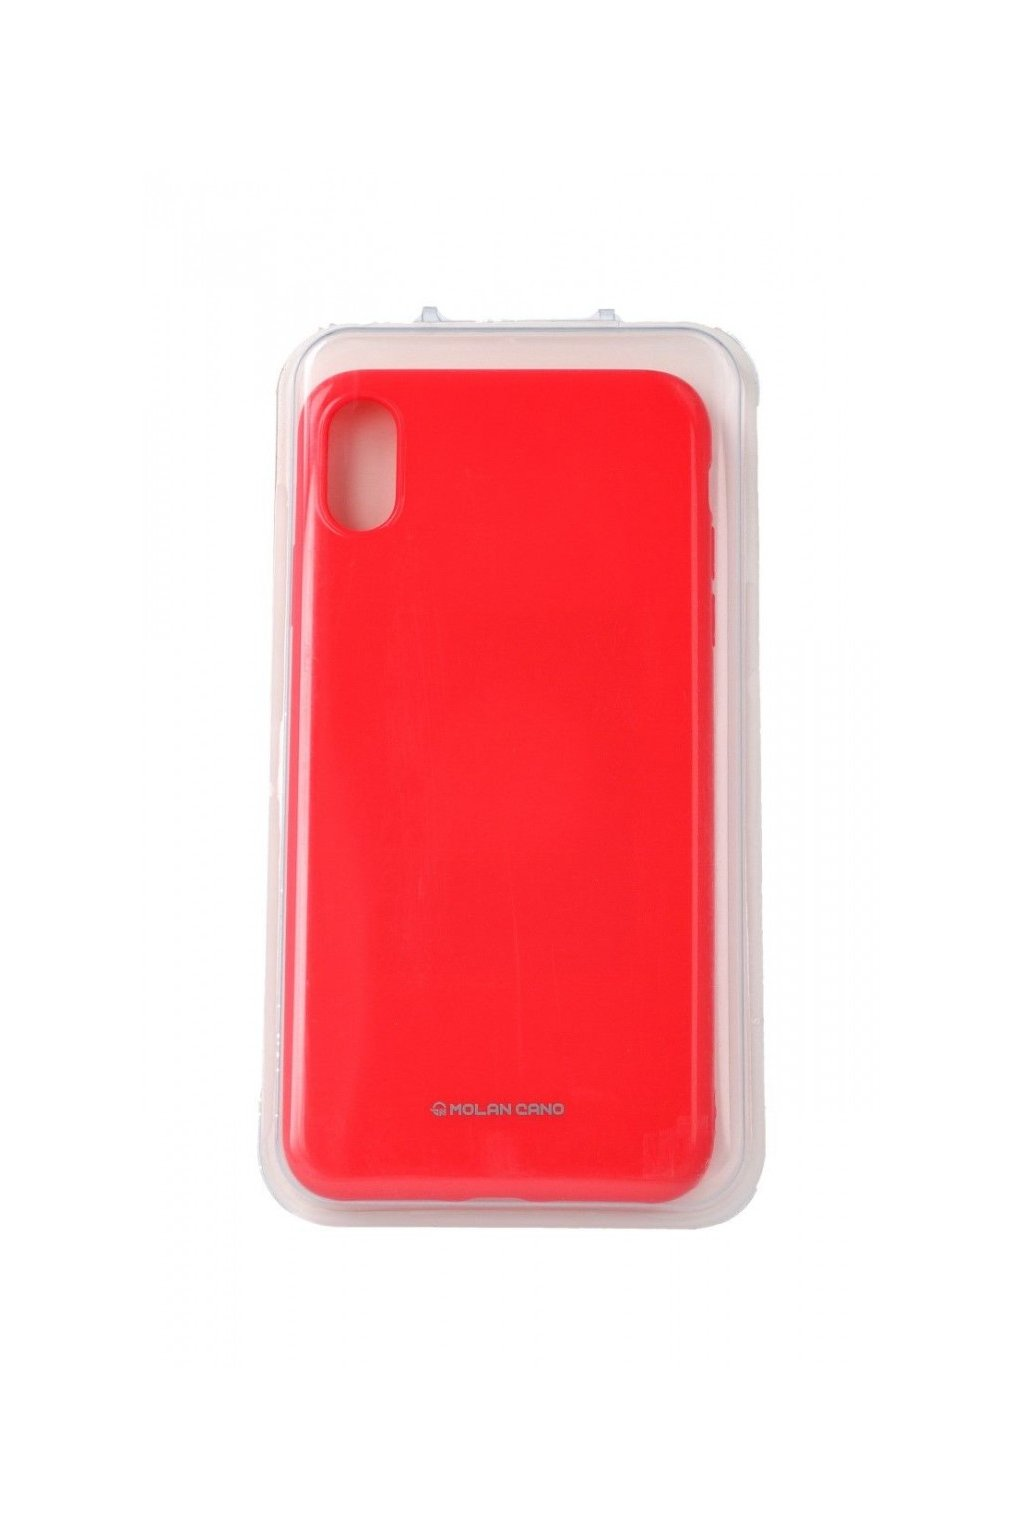 2243 molan cano jelly case pro iphone x xs hot pink